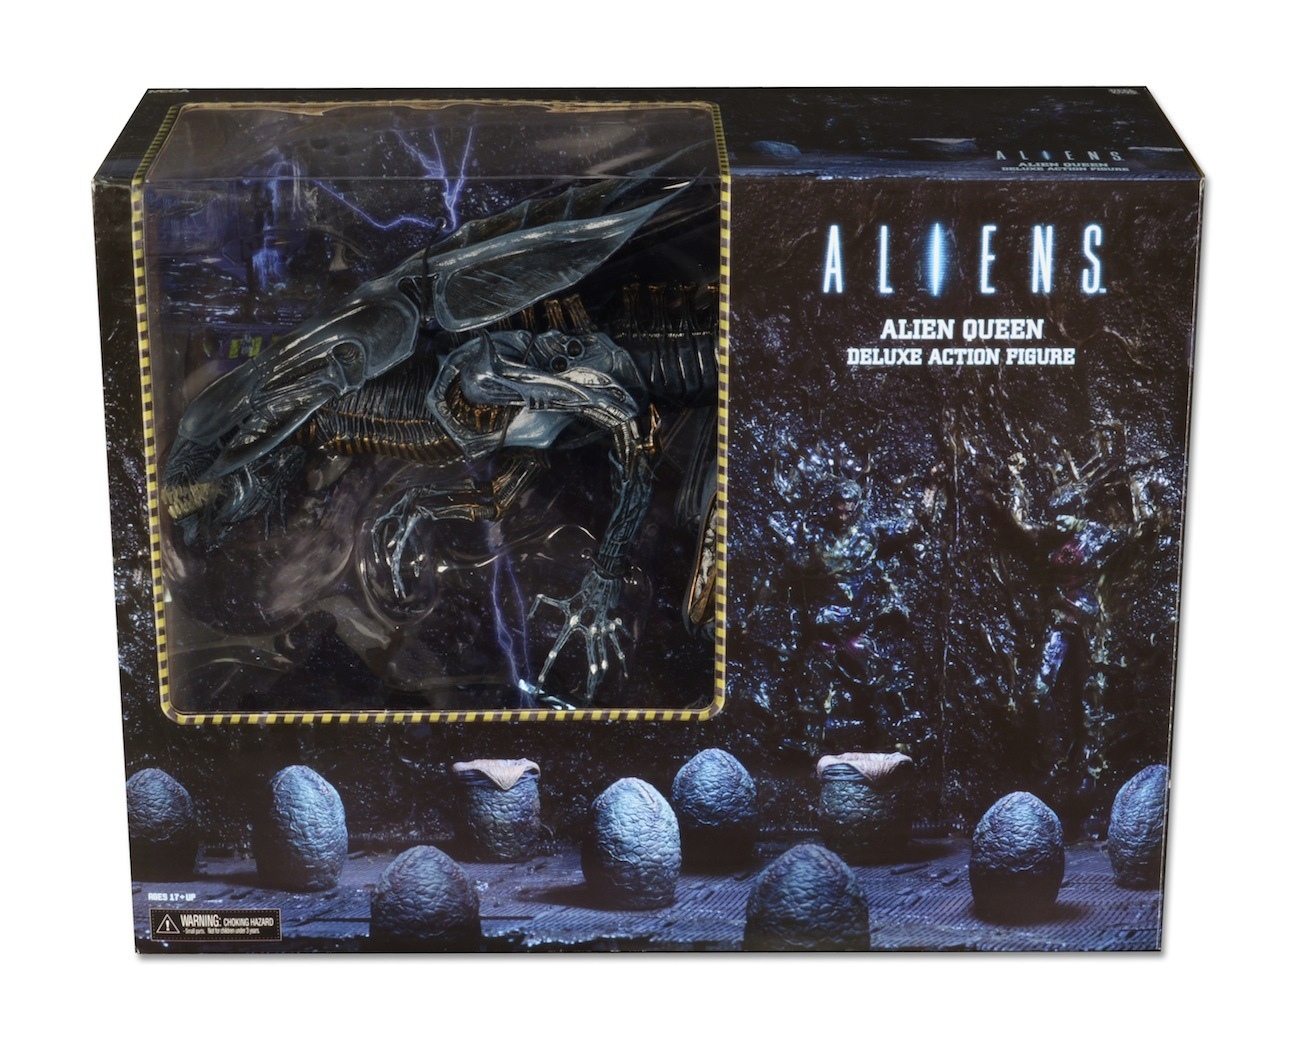 New Collective Edition 15 Alien Queen Action Figure Large Deluxe Gift Box Packing Alien Queen Model hardin collective action